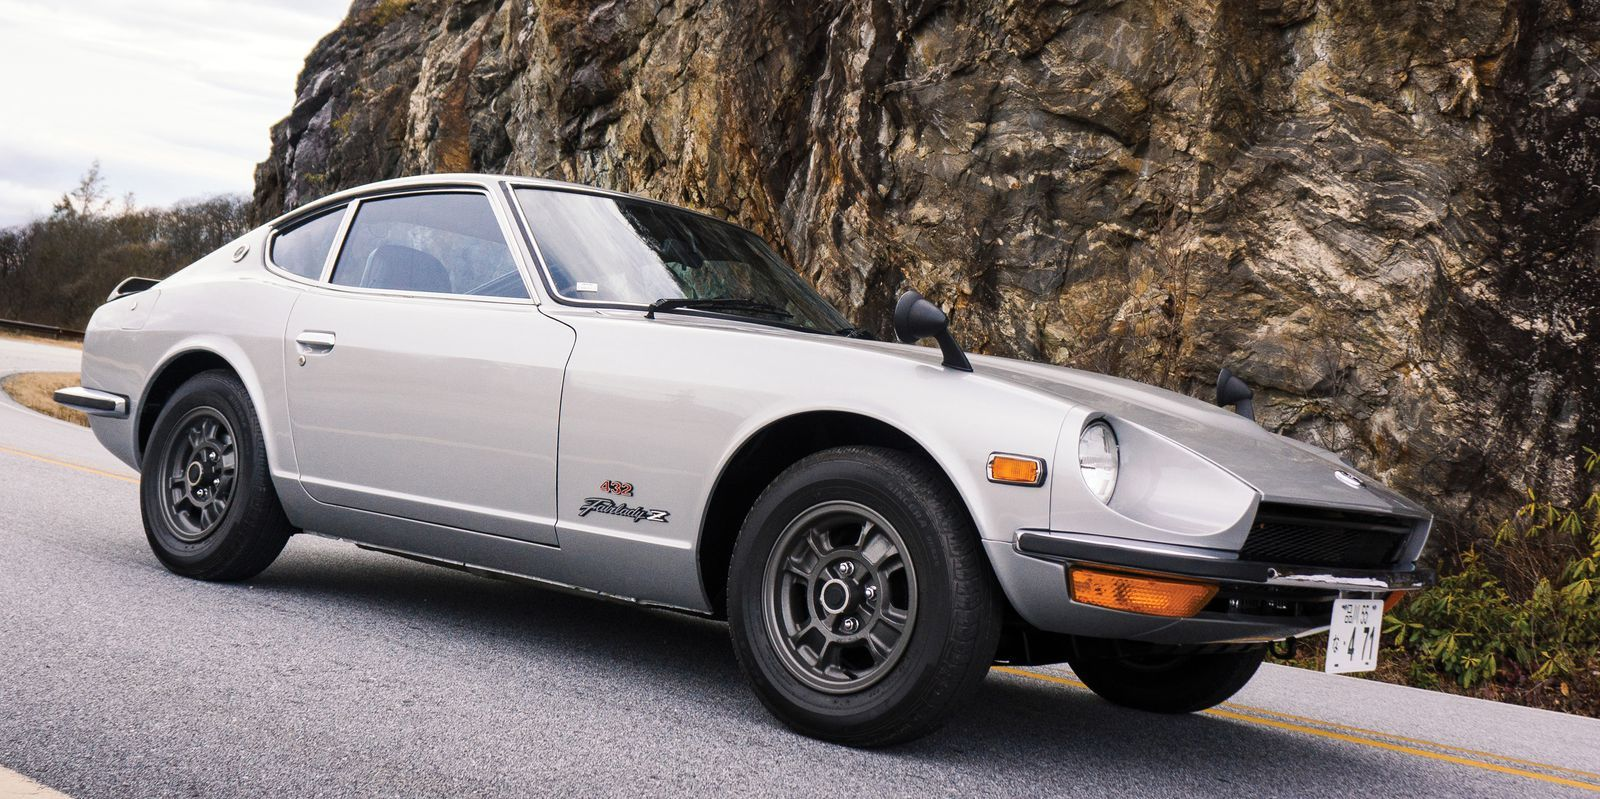 Ultra Rare Nissan Fairlady Z 432 Goes To Auction In Us Nissan Z Cars Nissan Datsun 240z